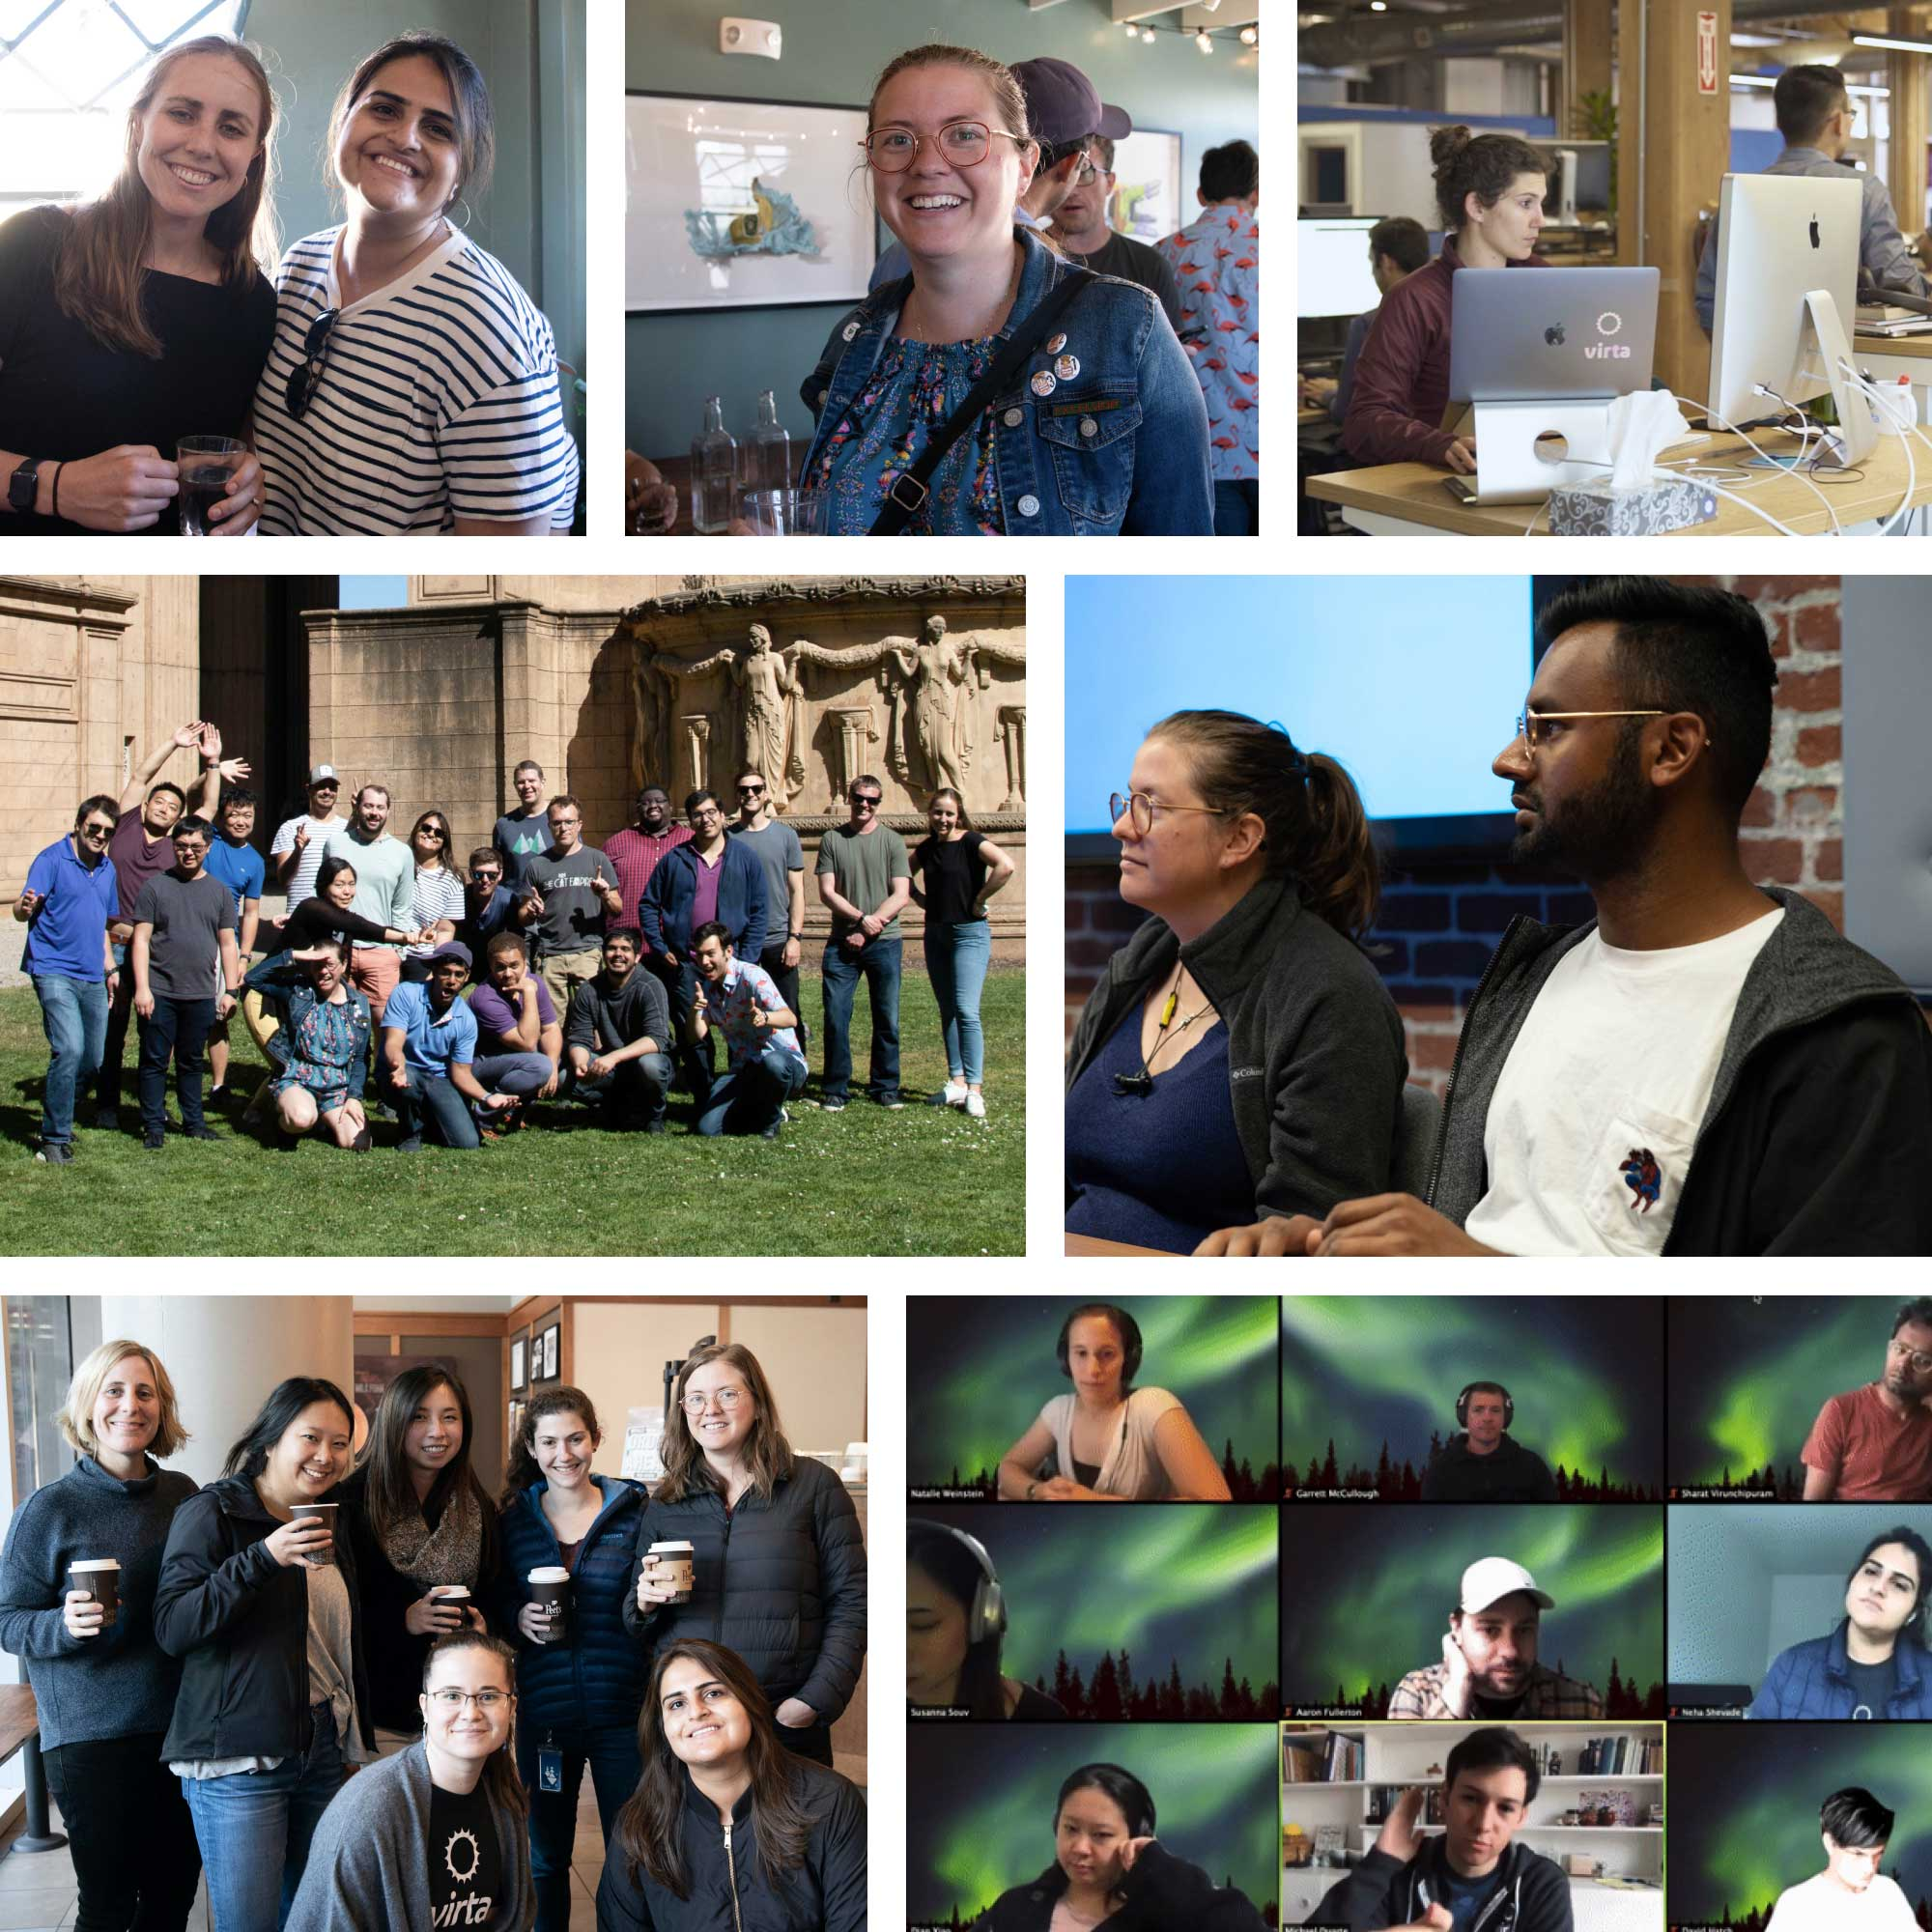 A collage of photos of the Engineering team at Virta